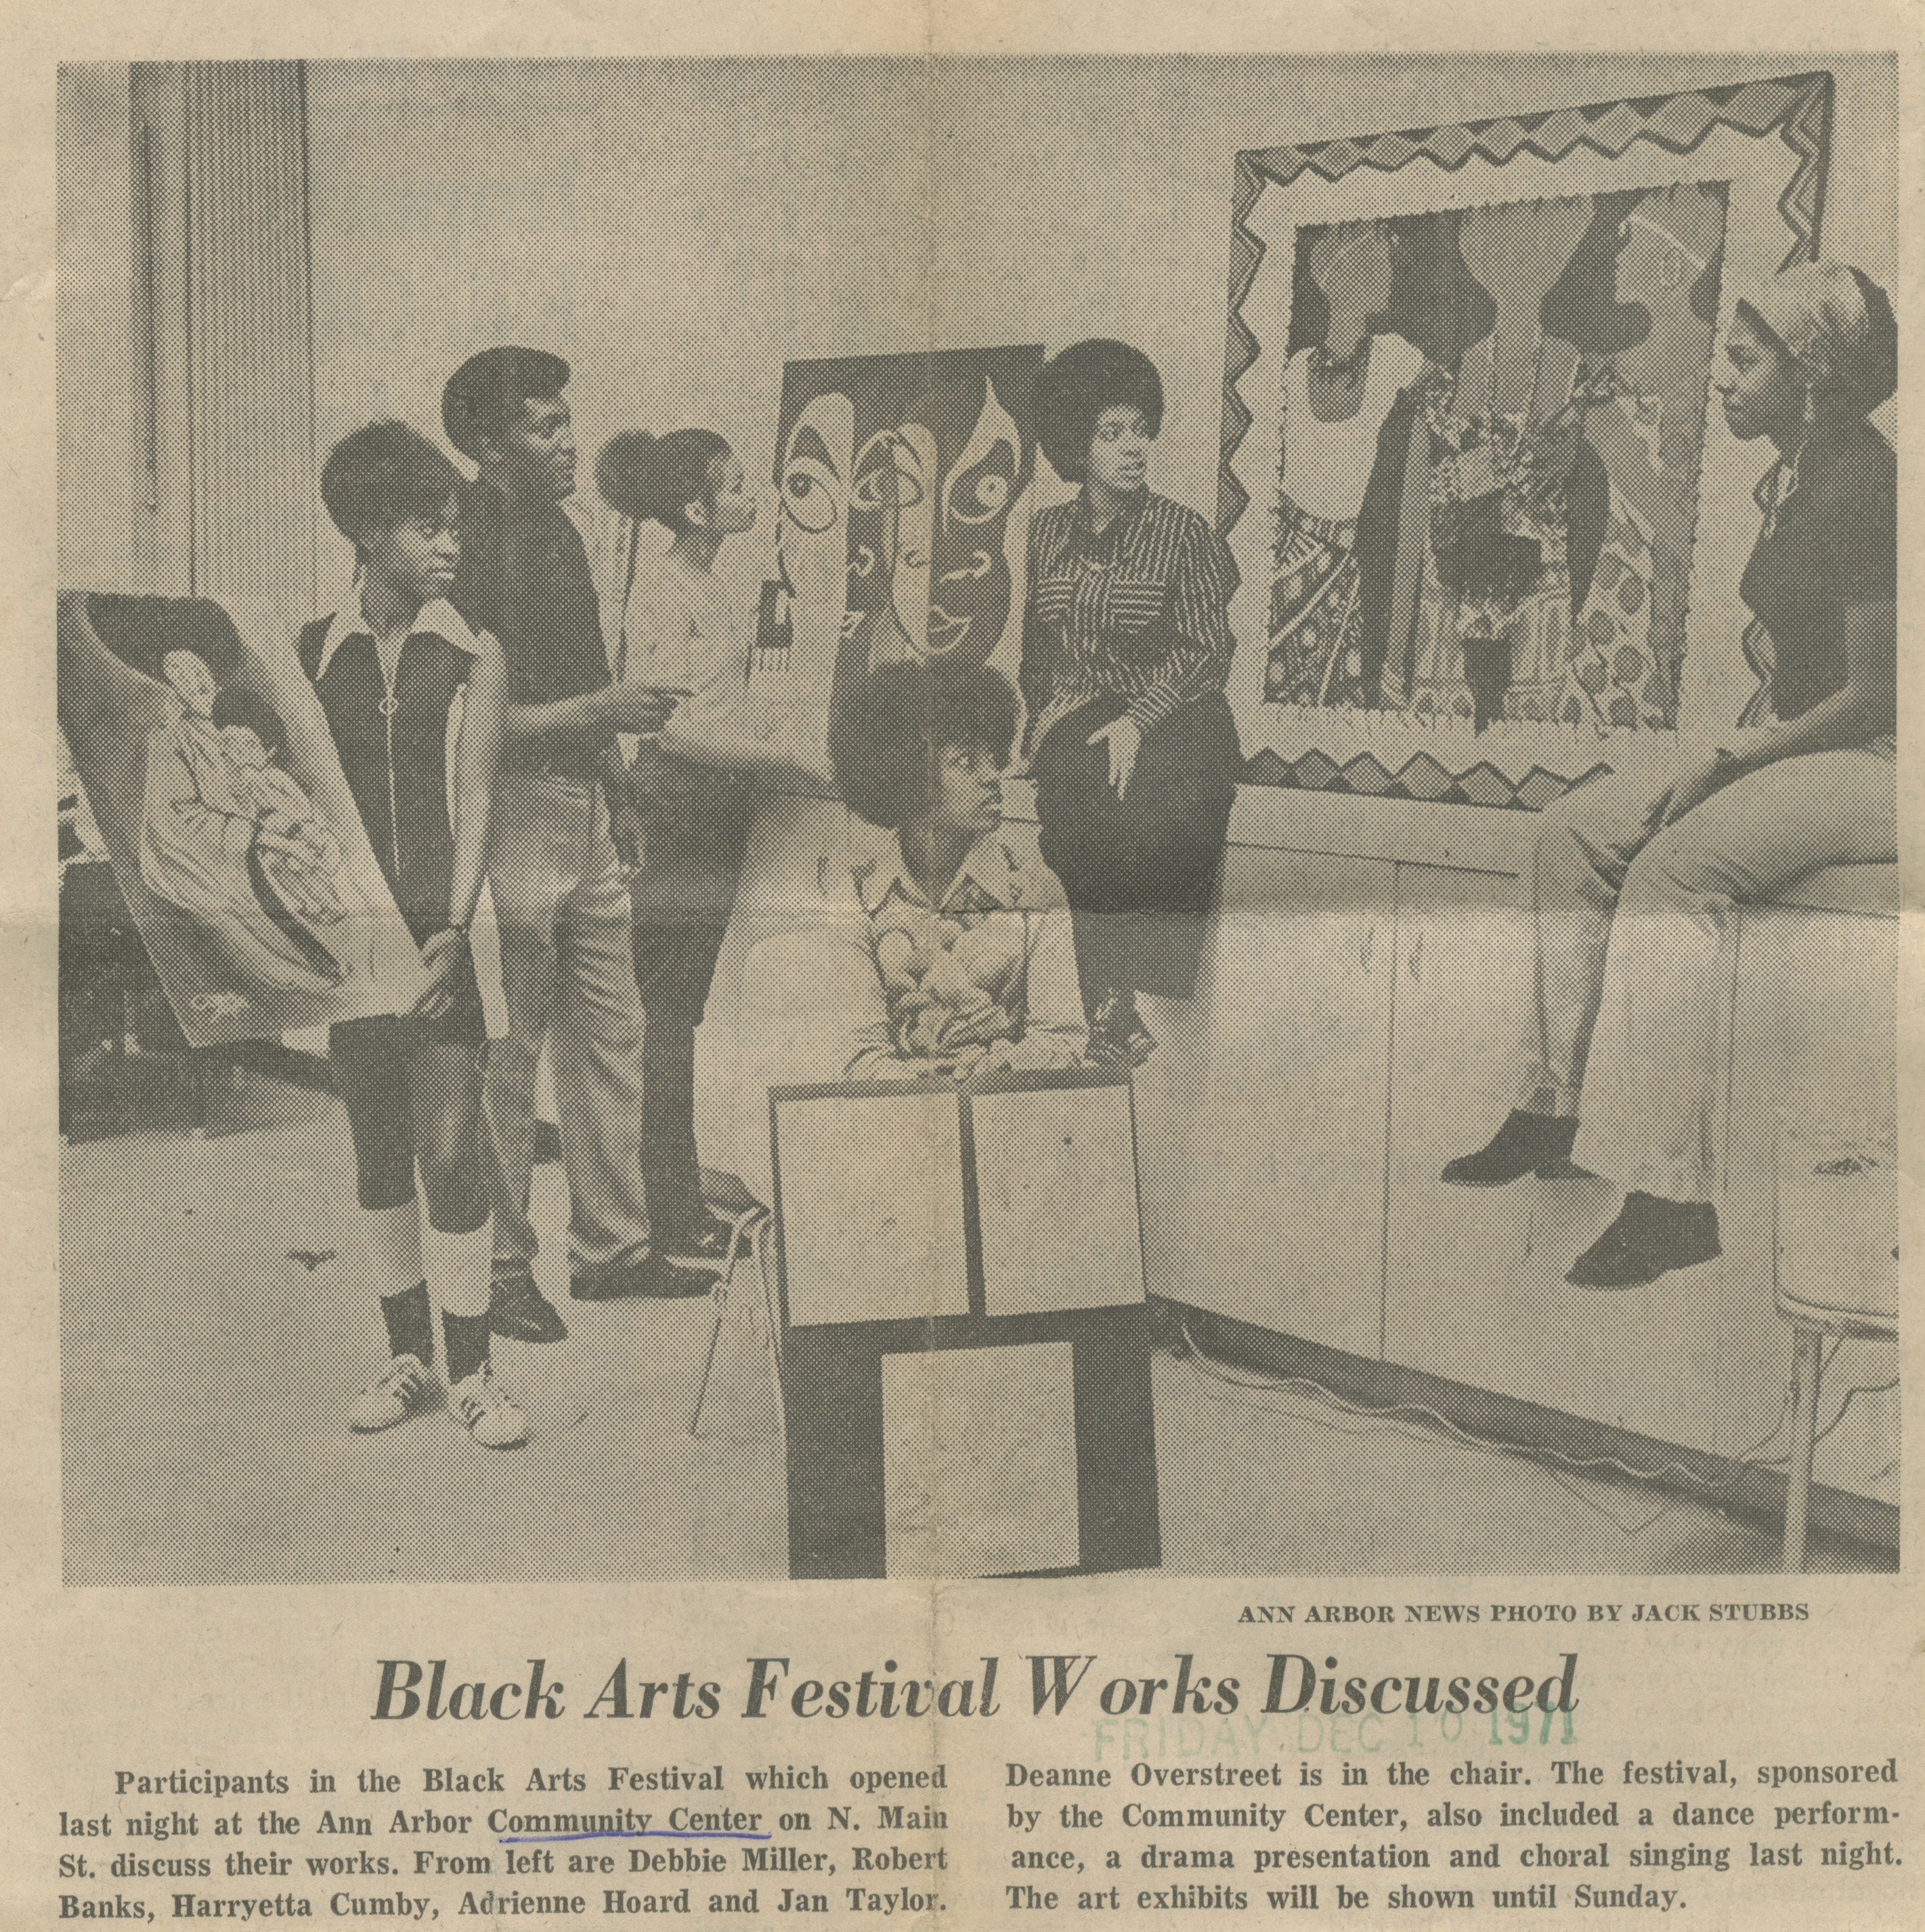 Black Arts Festival Works Discussed image